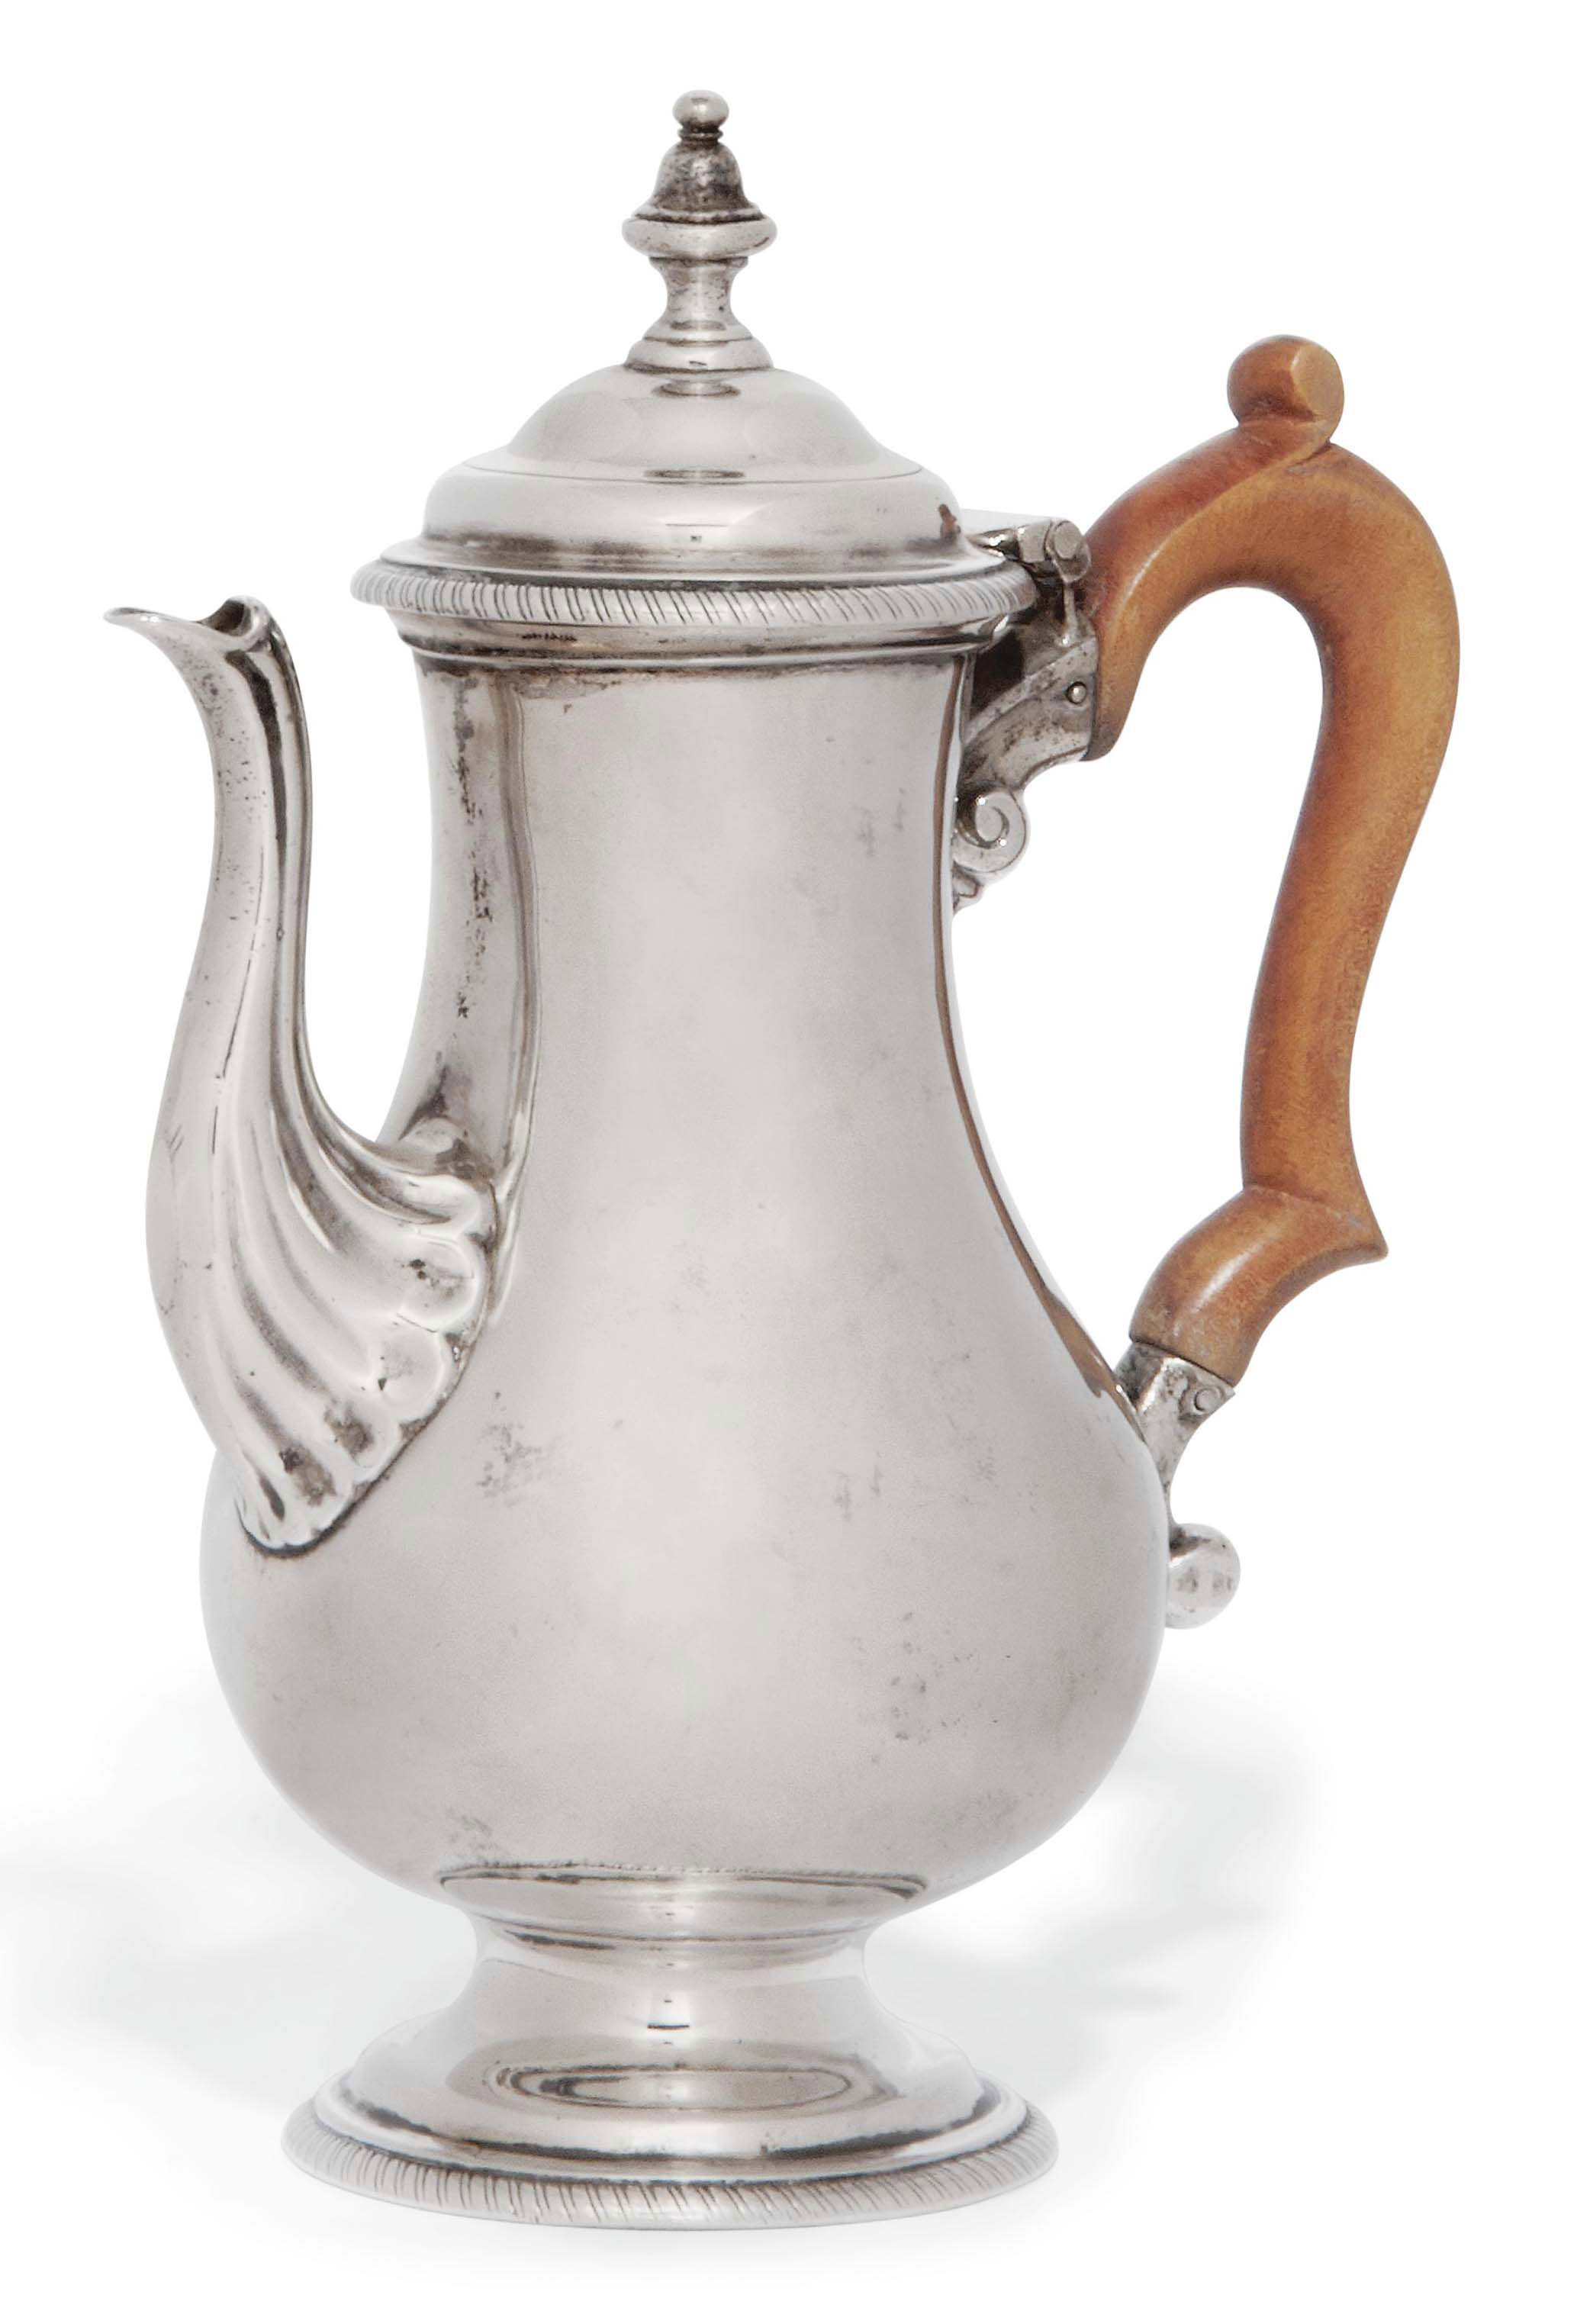 A SMALL GEORGE III SILVER COFFEE POT